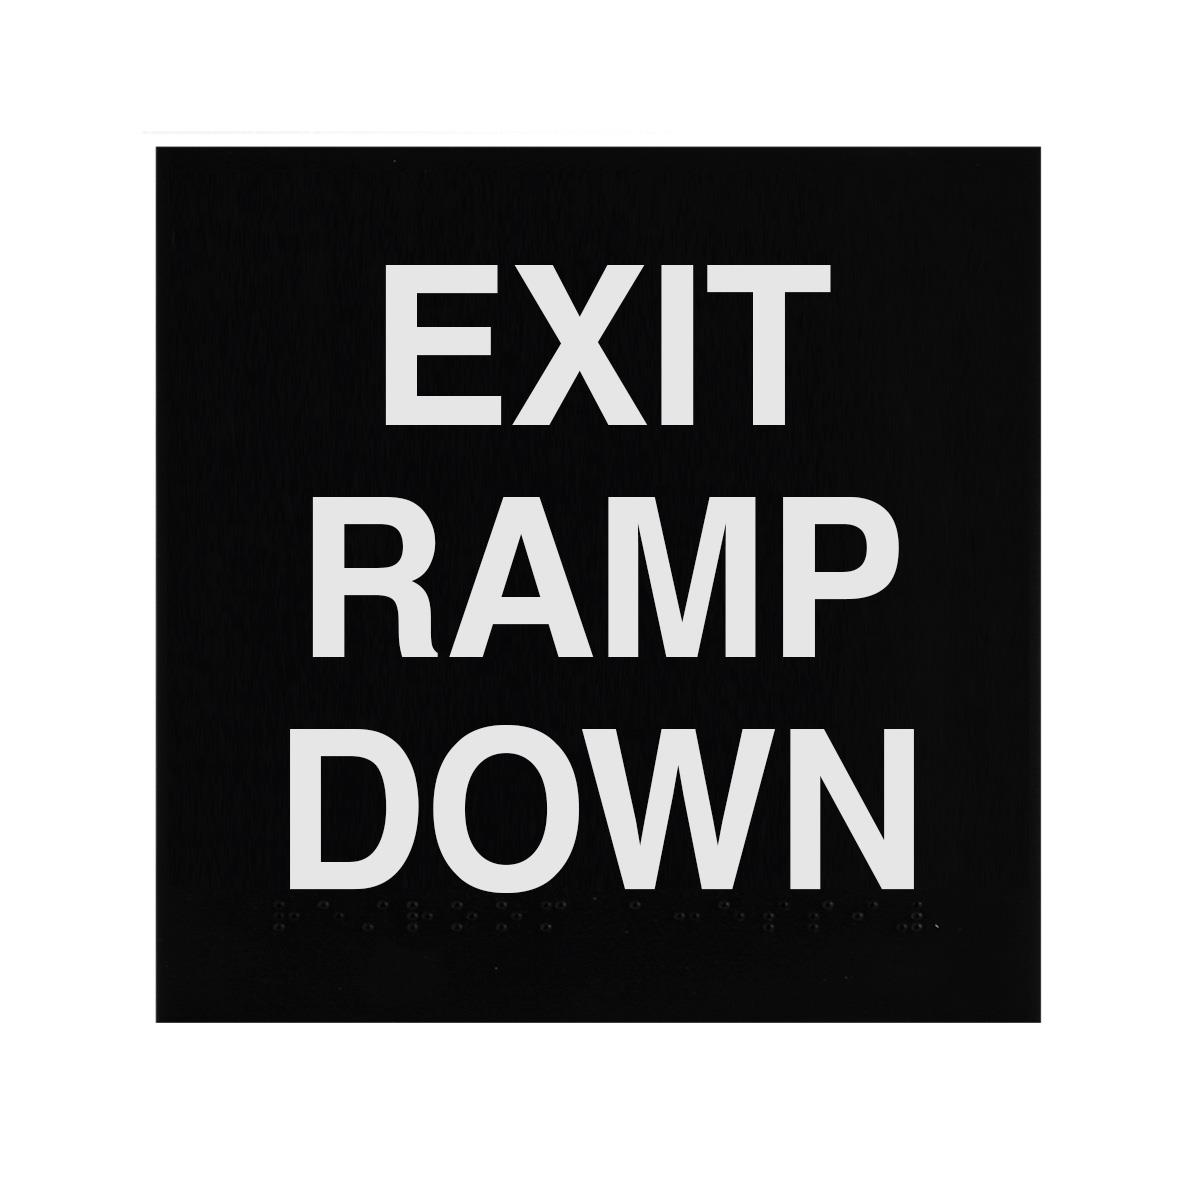 ADA Braille Exit Ramp Down Sign Engraved Applique Grade 2